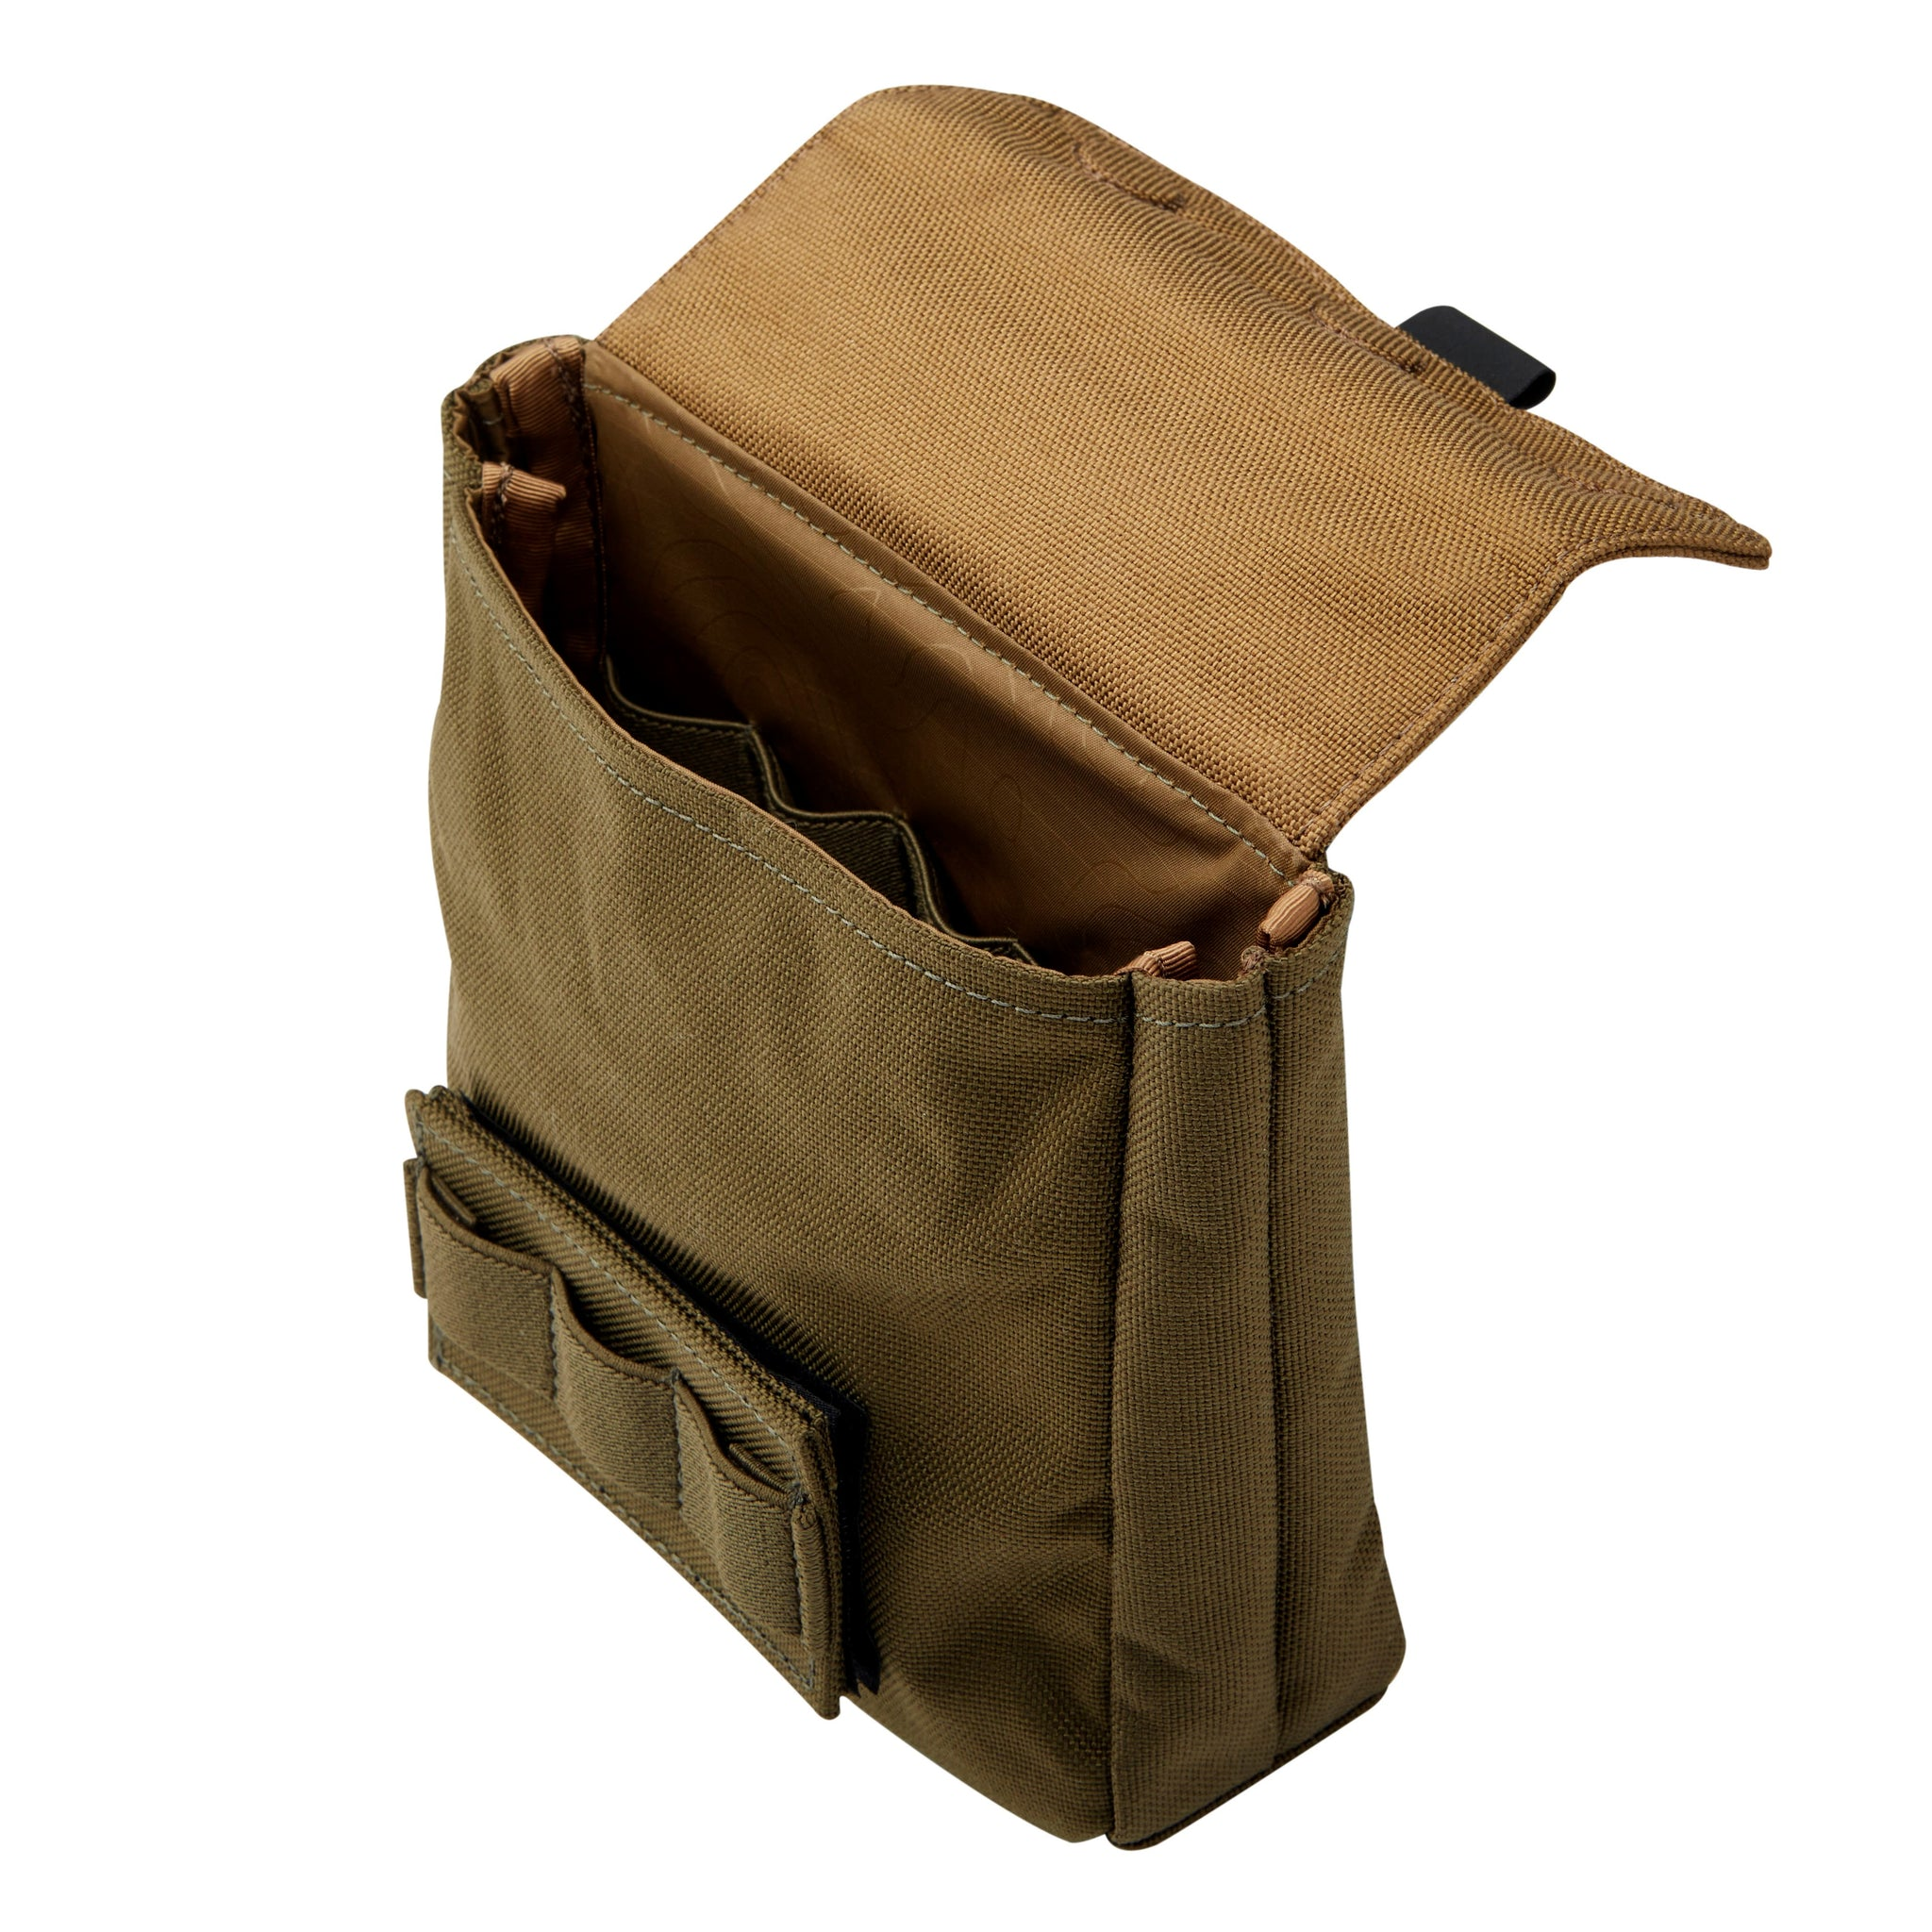 Quick Grab Ammo Pouch - Earth Tone